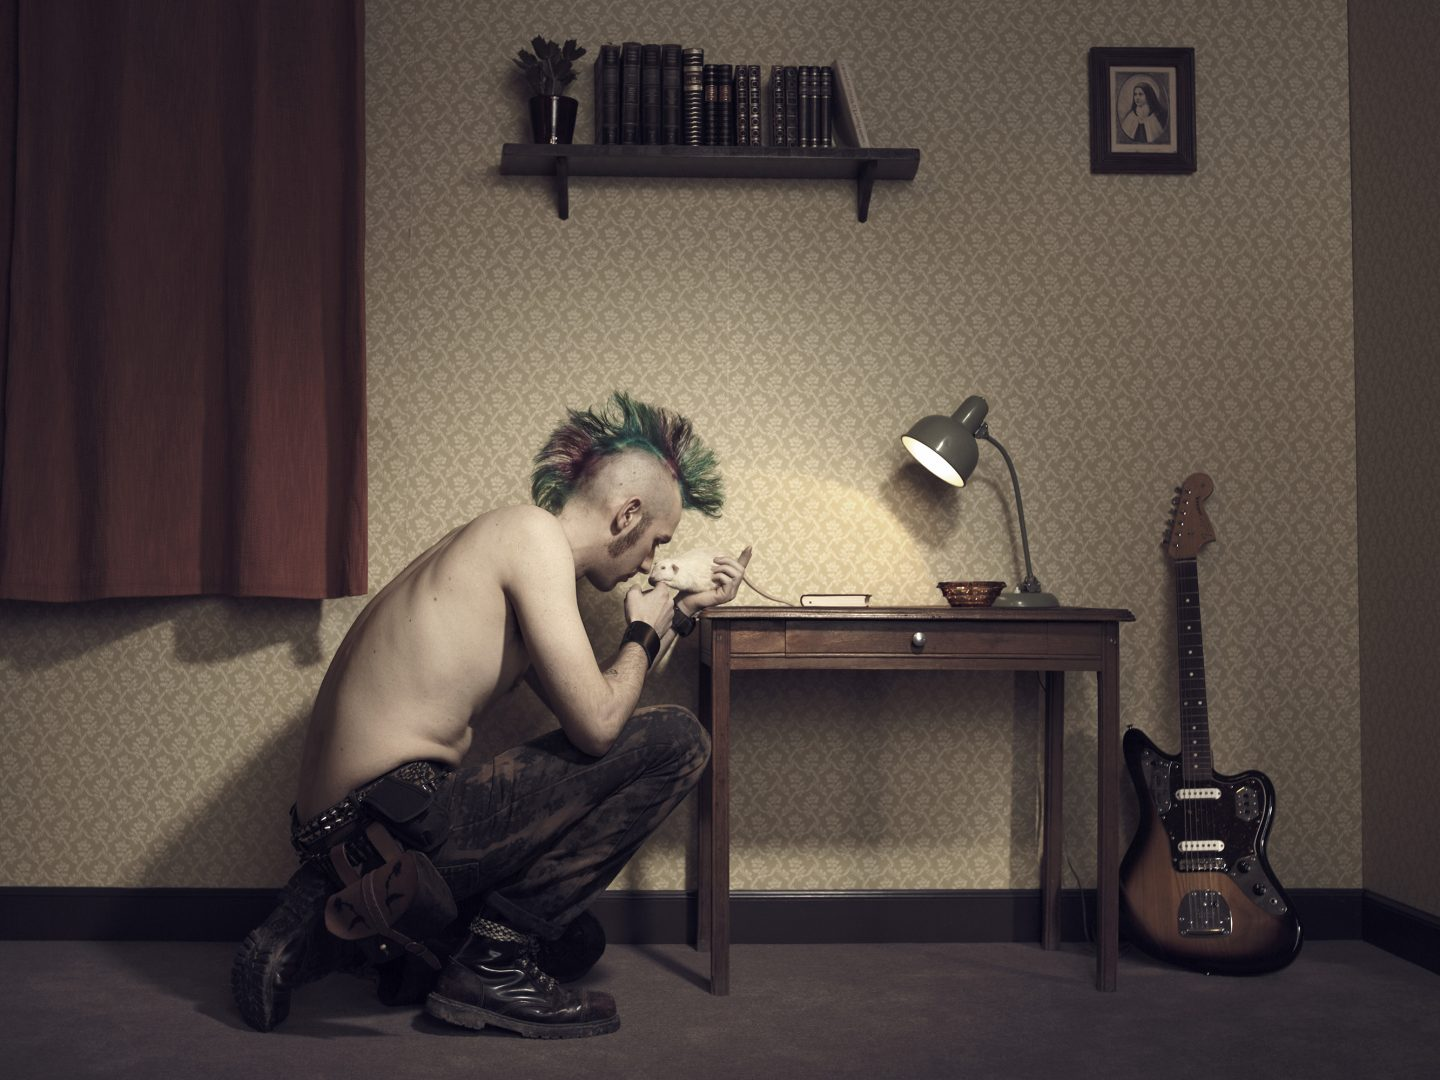 Punk playing with his rat in room 42 by Stefan Rappo